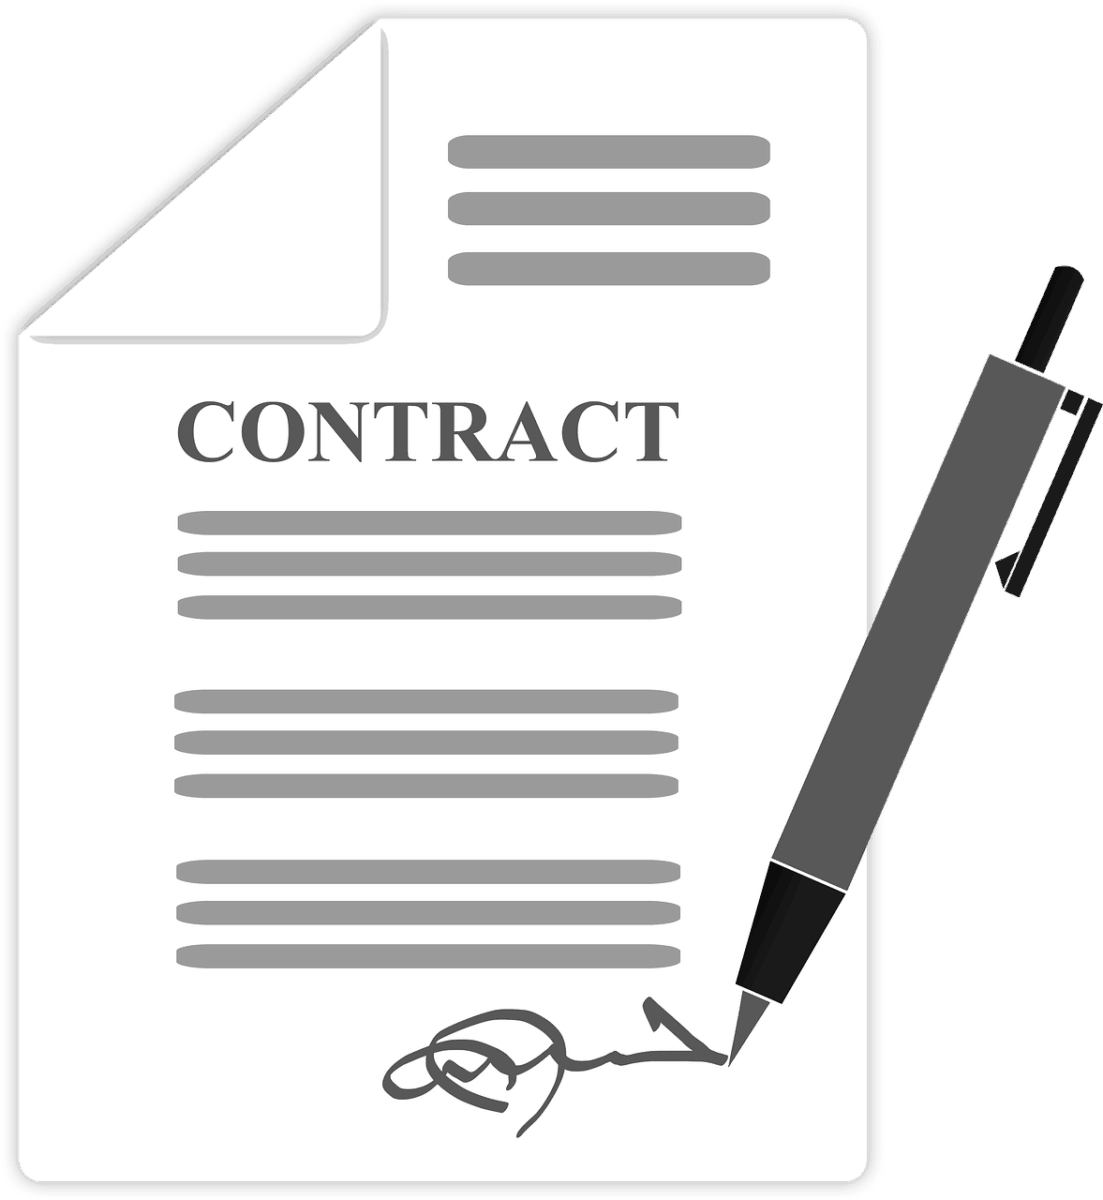 Why are contracts important? 6